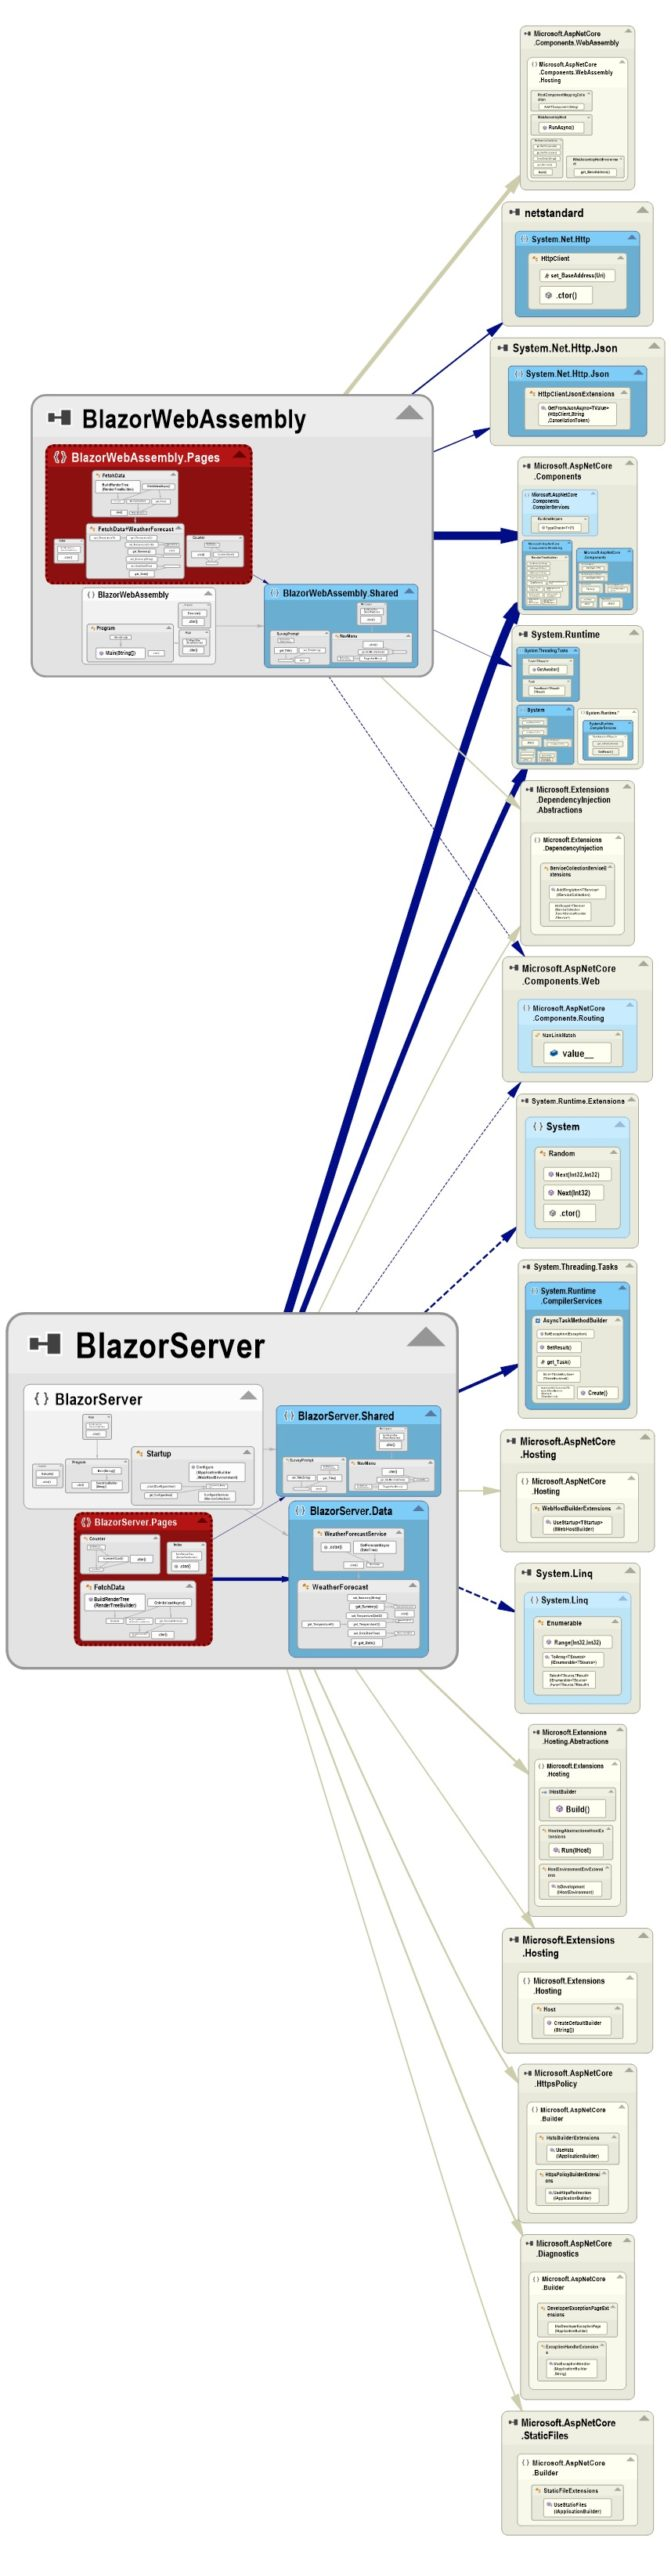 NDepend Dependency Graph of the default Blazor WebAssembly and Blazor Server